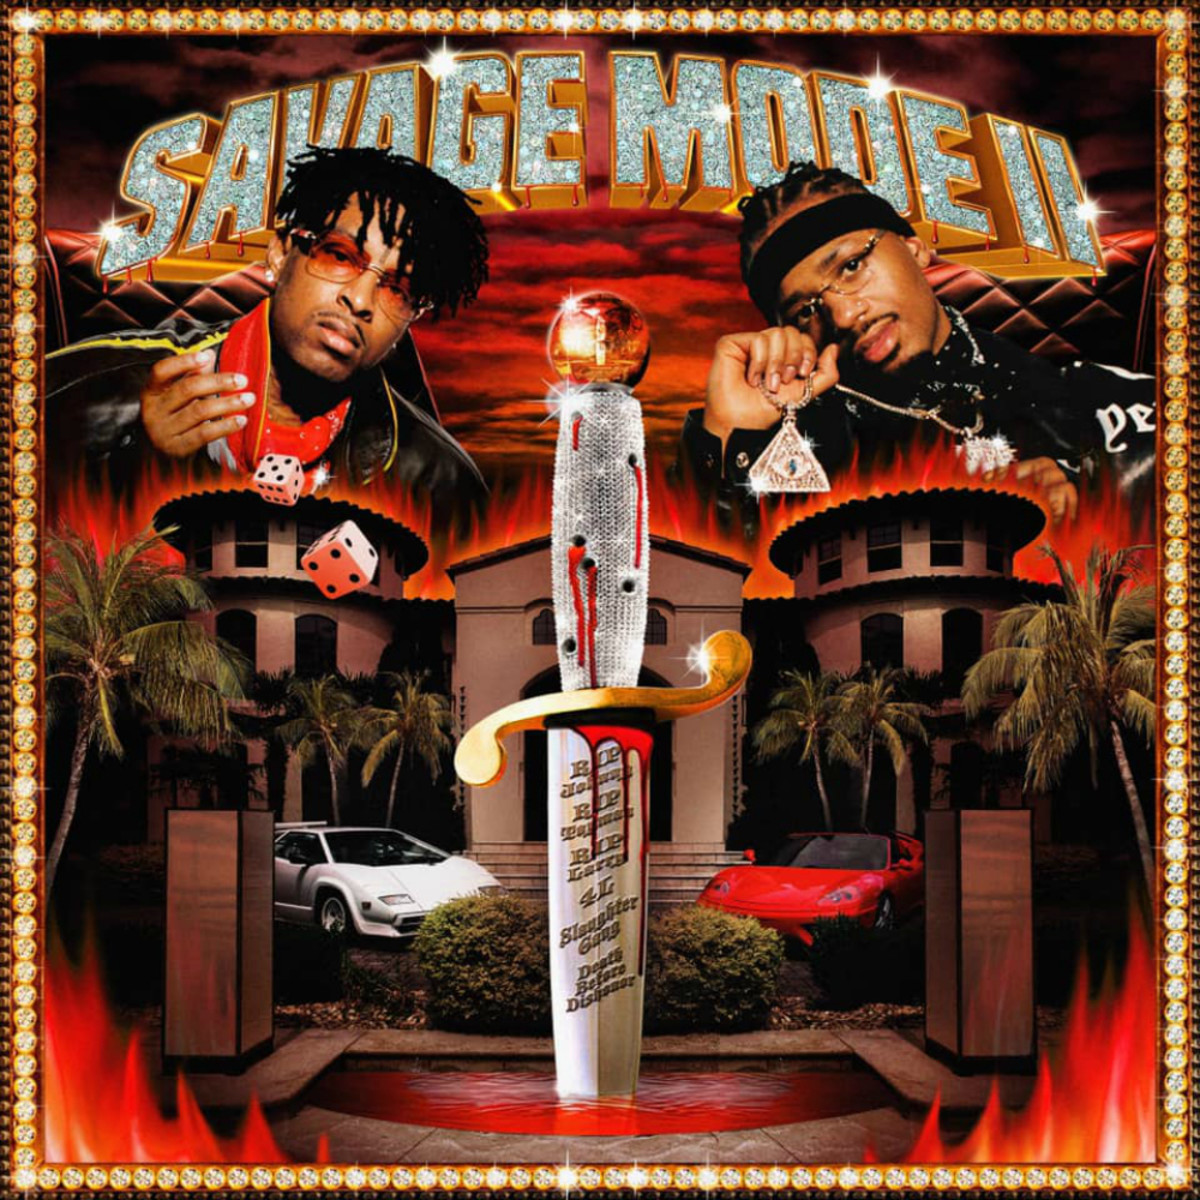 21 Savage and Metro Boomin Level Up on 'Savage Mode II'